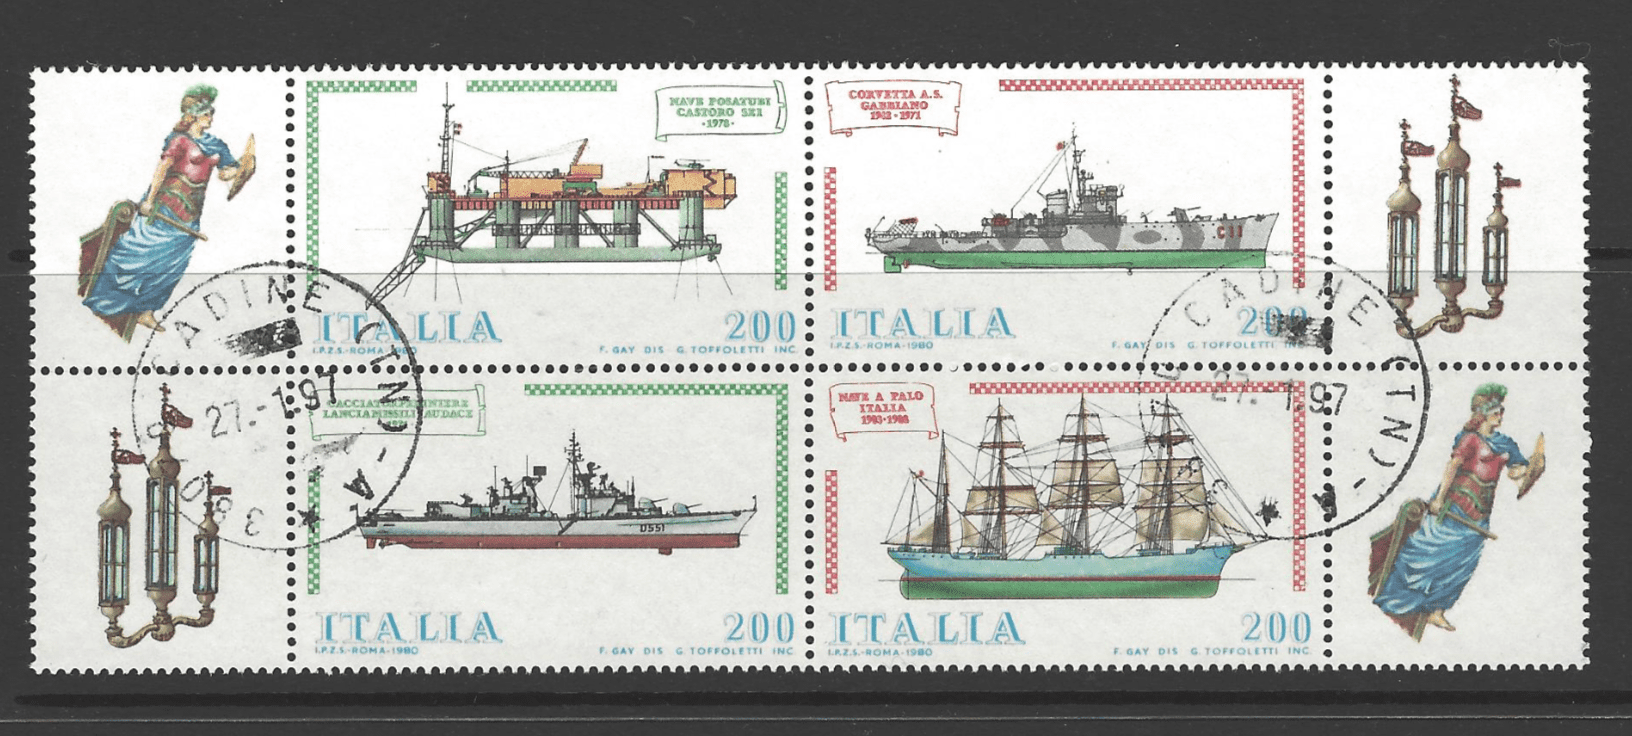 SG 1691a, Italy Stamps